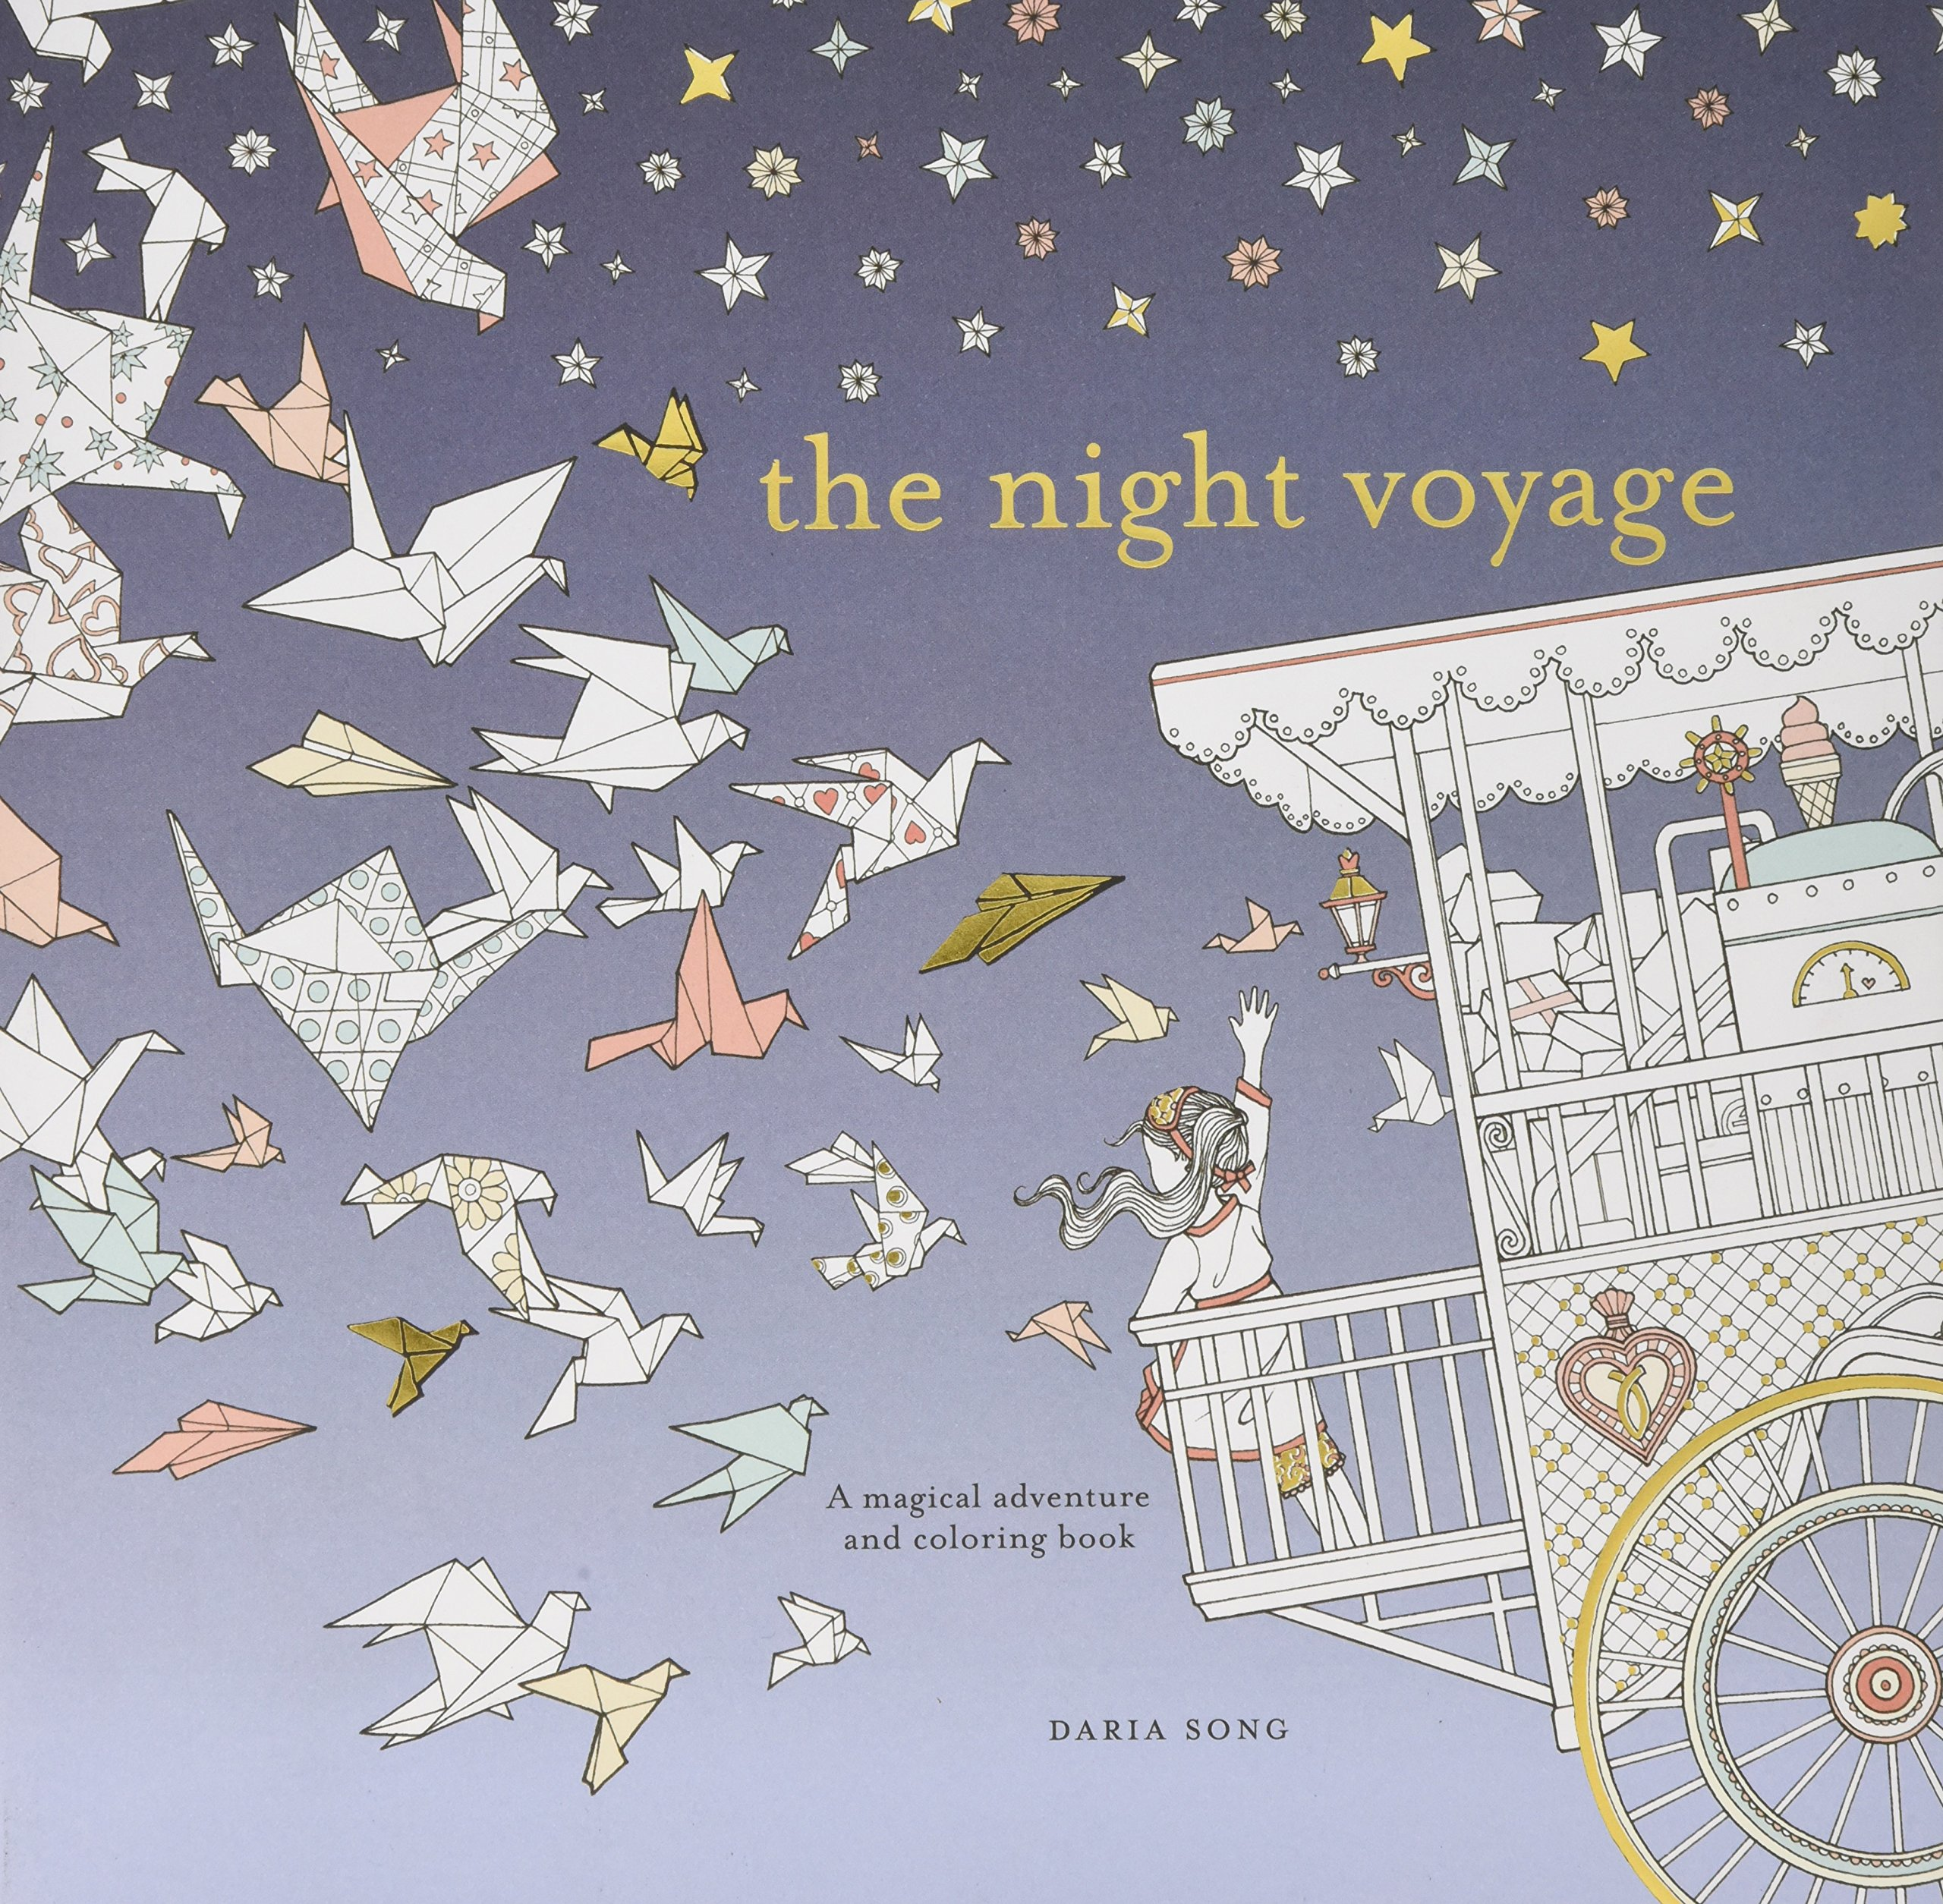 A fun magic coloring book amazon - The Night Voyage A Magical Adventure And Coloring Book Time Adult Coloring Books Daria Song 9780399579042 Amazon Com Books